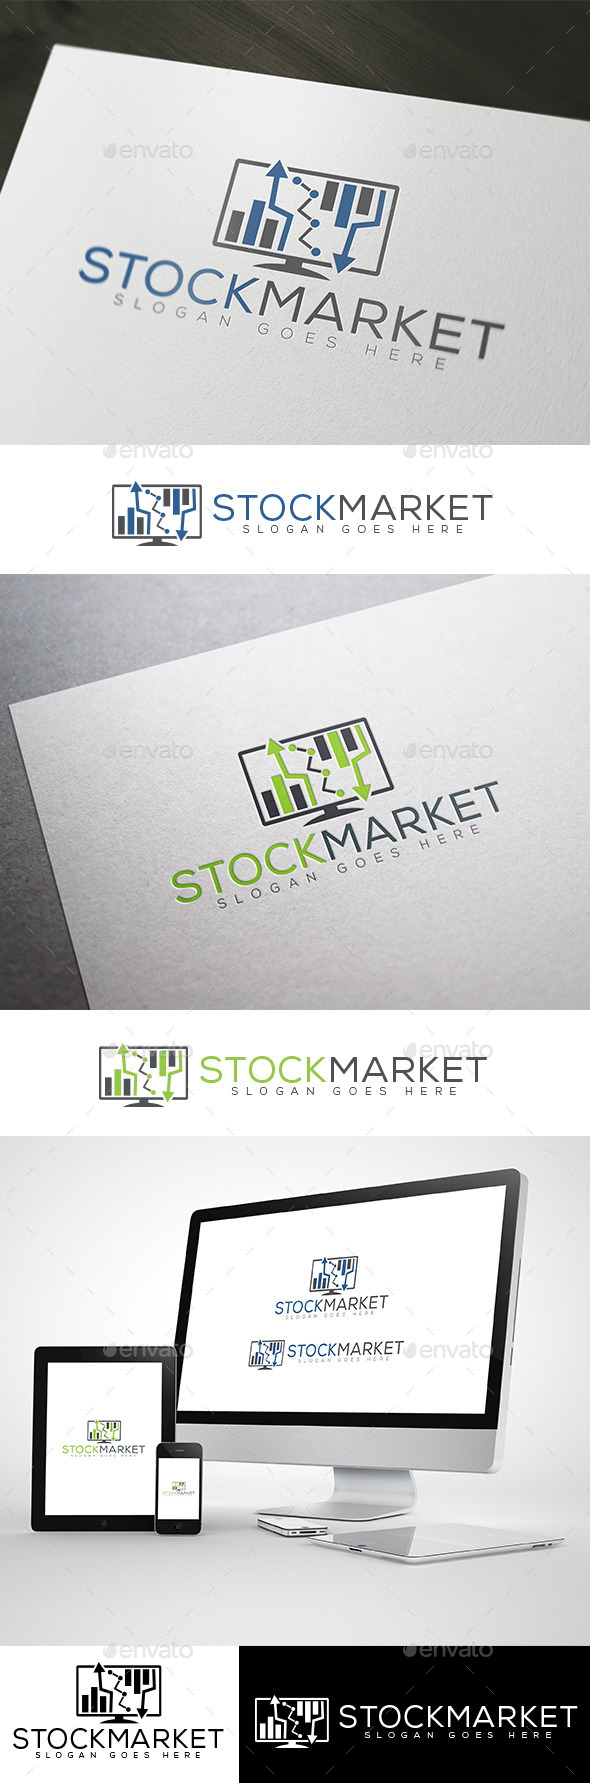 Stock Market & Online Finance Logo - Abstract Logo Templates